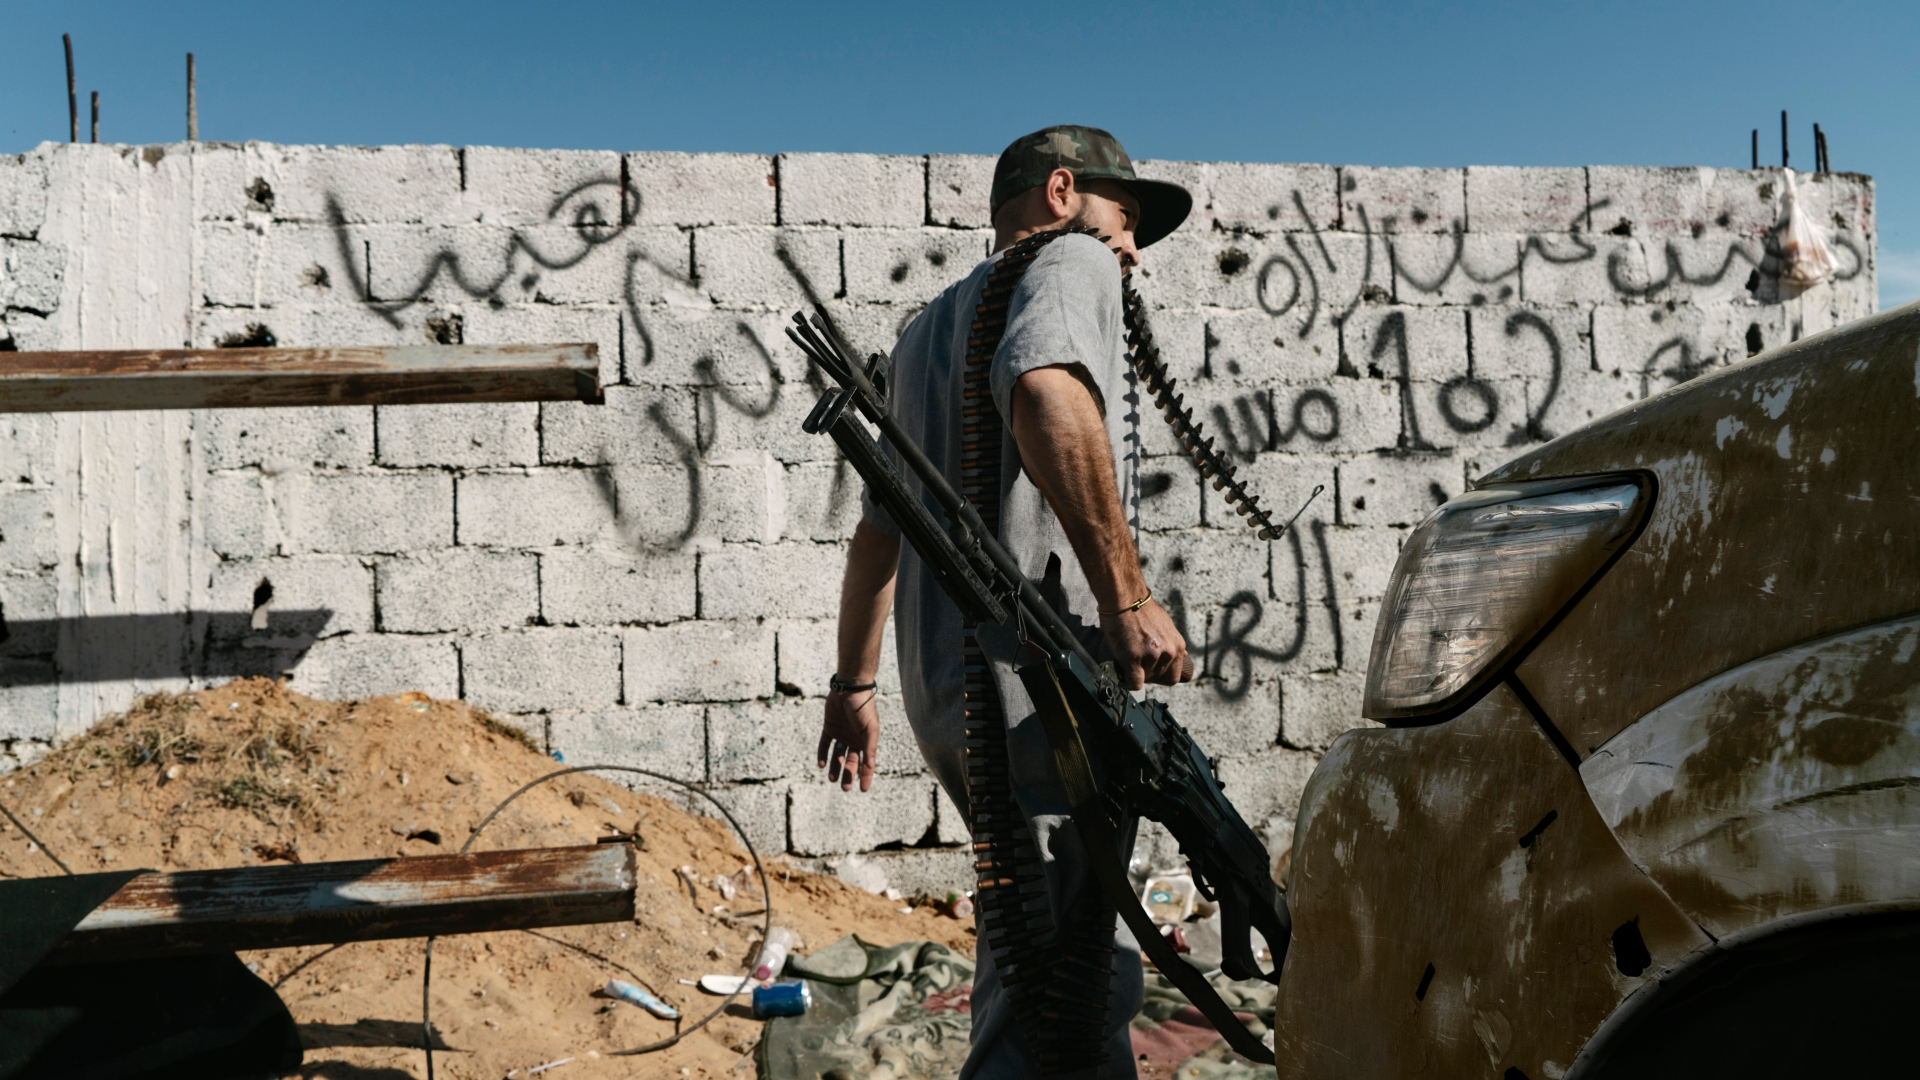 He once attacked Tripoli. Now a Libyan militia leader defends it from another invader.